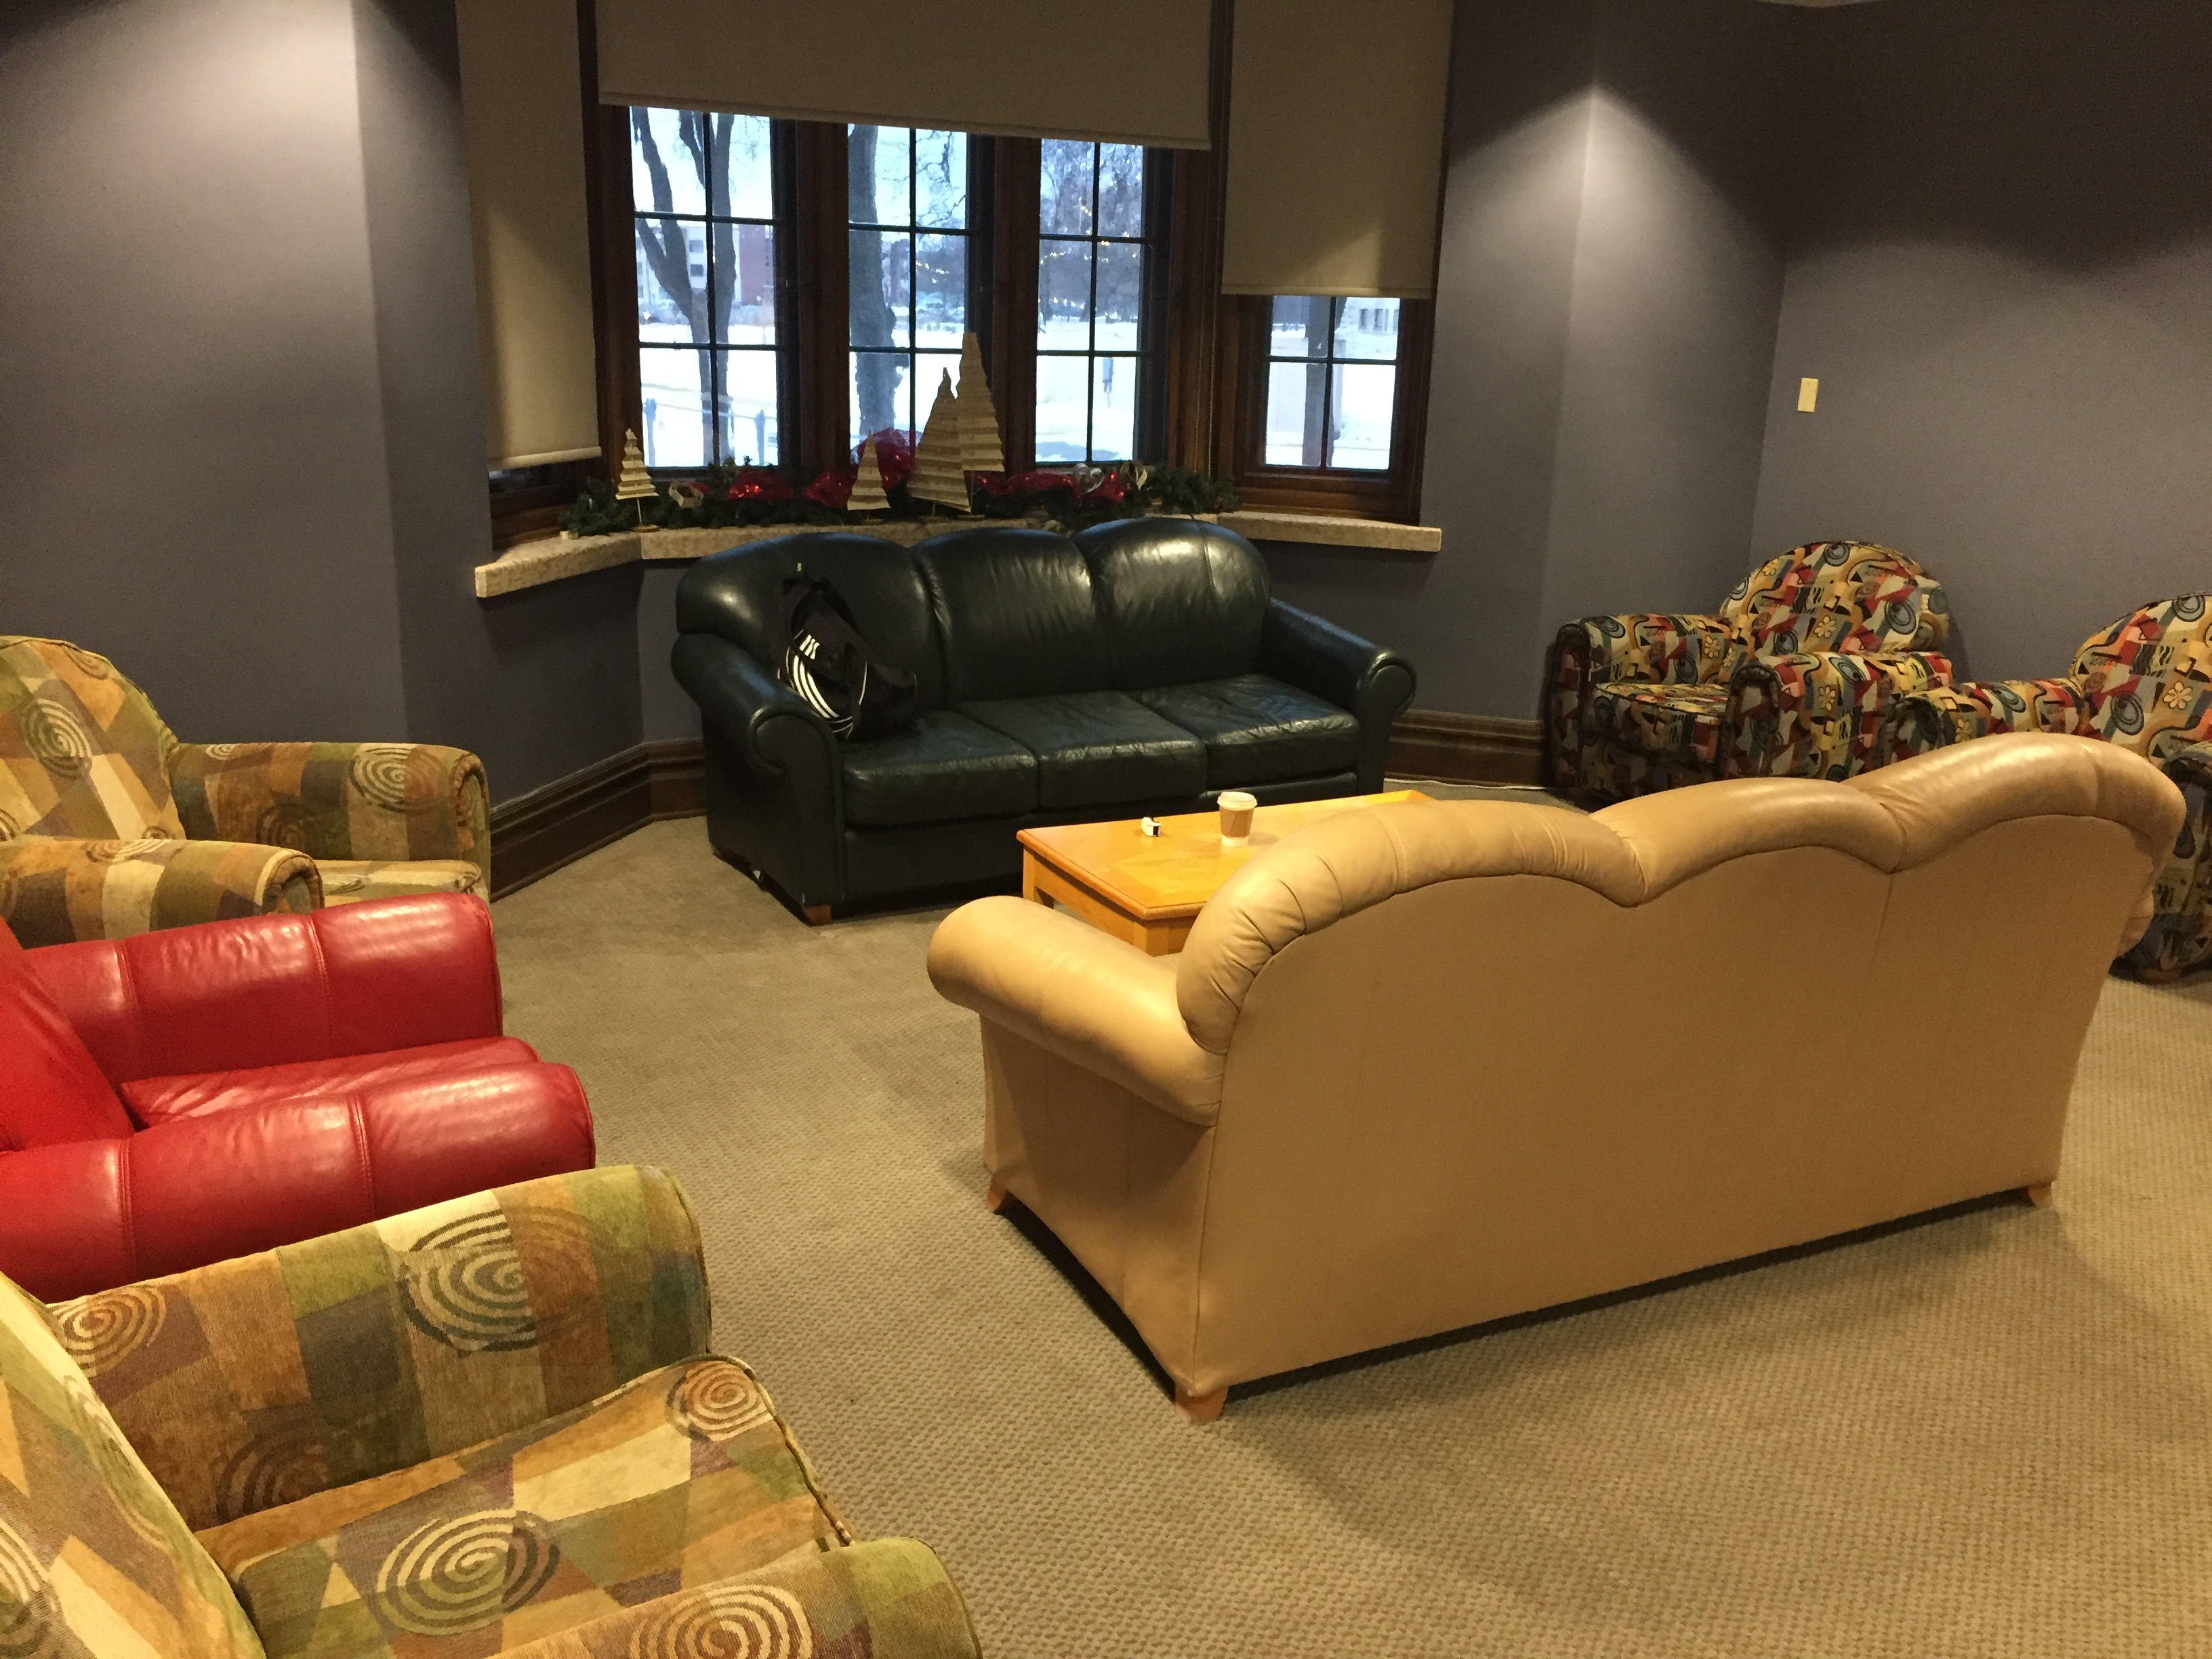 North Campus Lounges - The Pros and Cons of CMU's Many Study Spaces